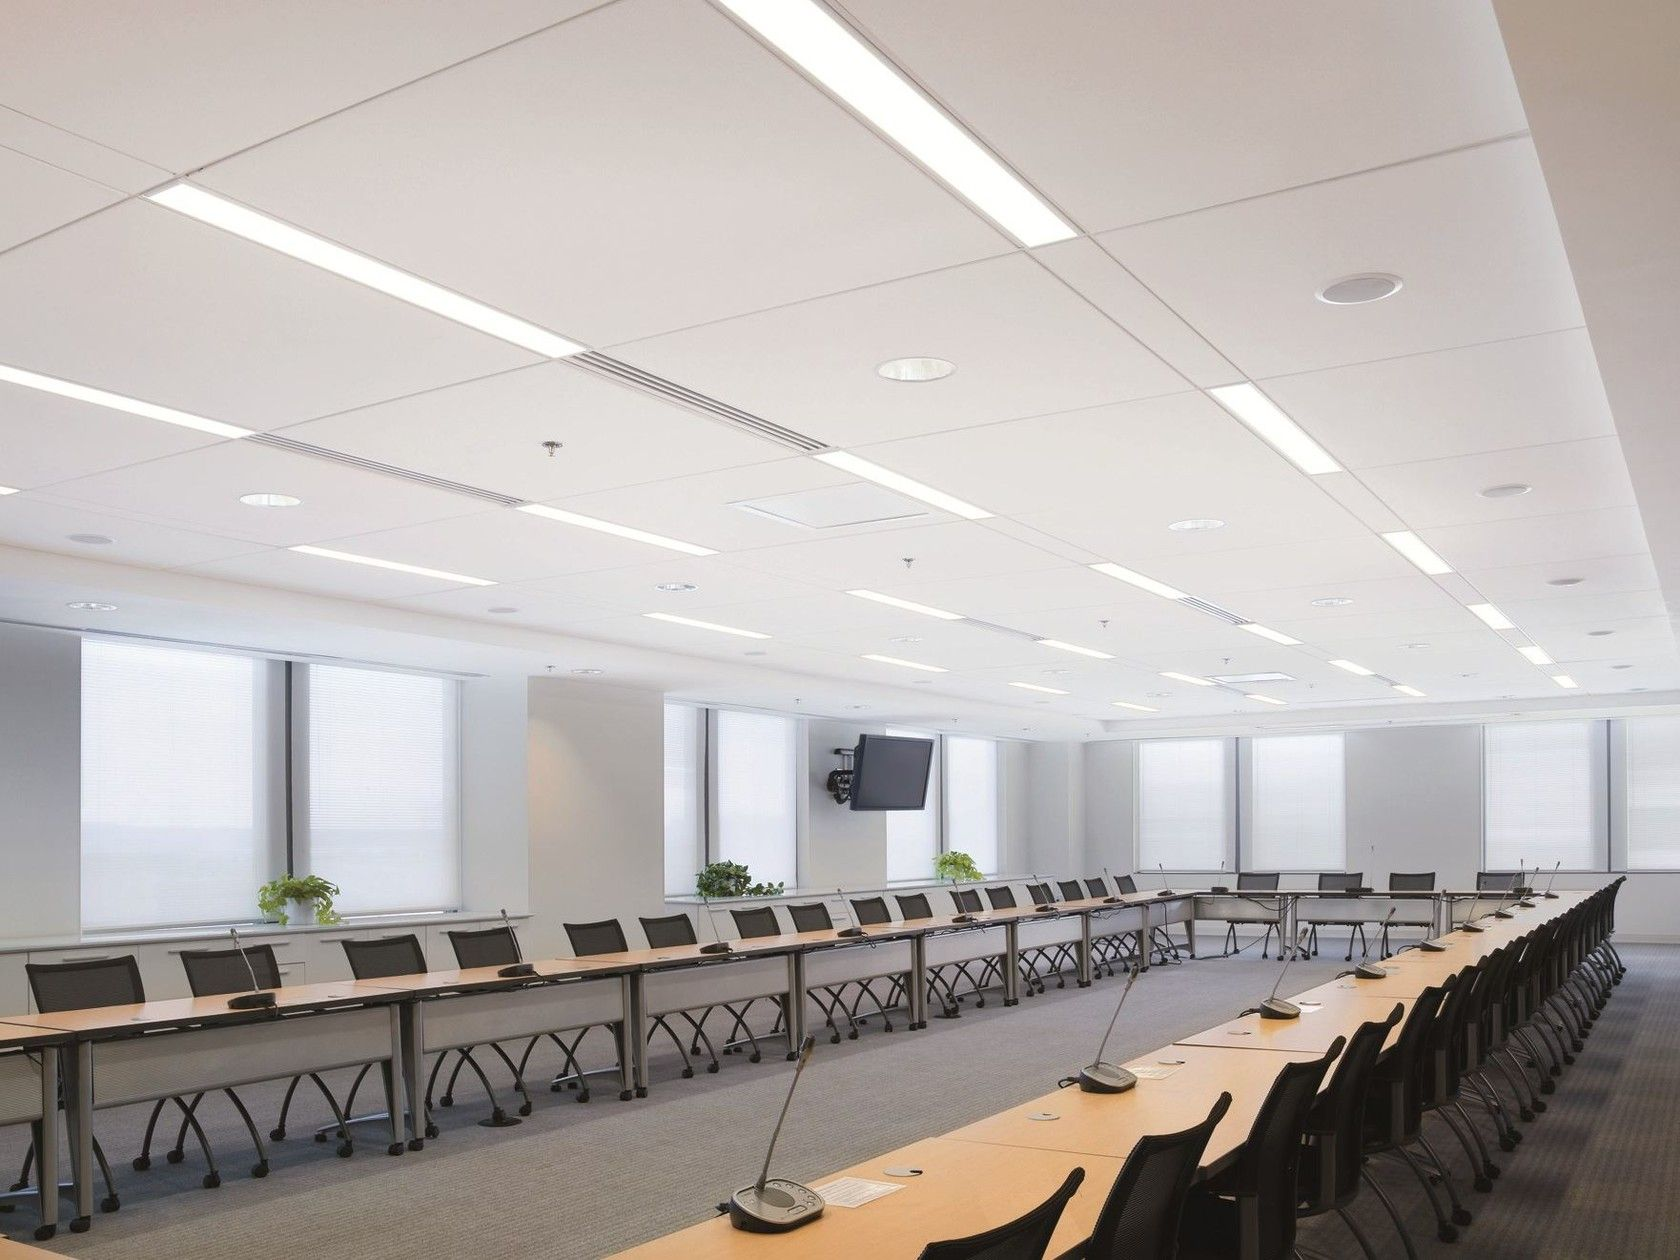 Acoustic ceiling tiles techzone tm by armstrong iroda pinterest acoustic ceiling tiles techzone tm by armstrong dailygadgetfo Image collections